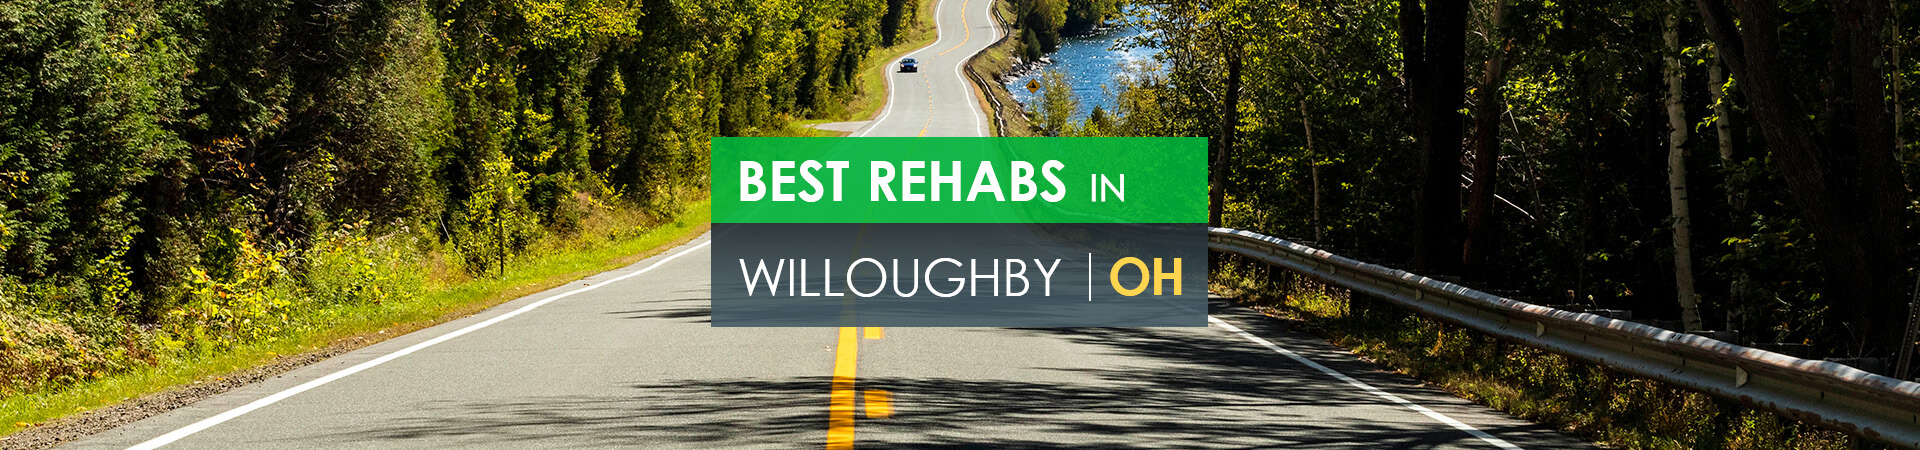 Best rehabs in Willoughby, OH